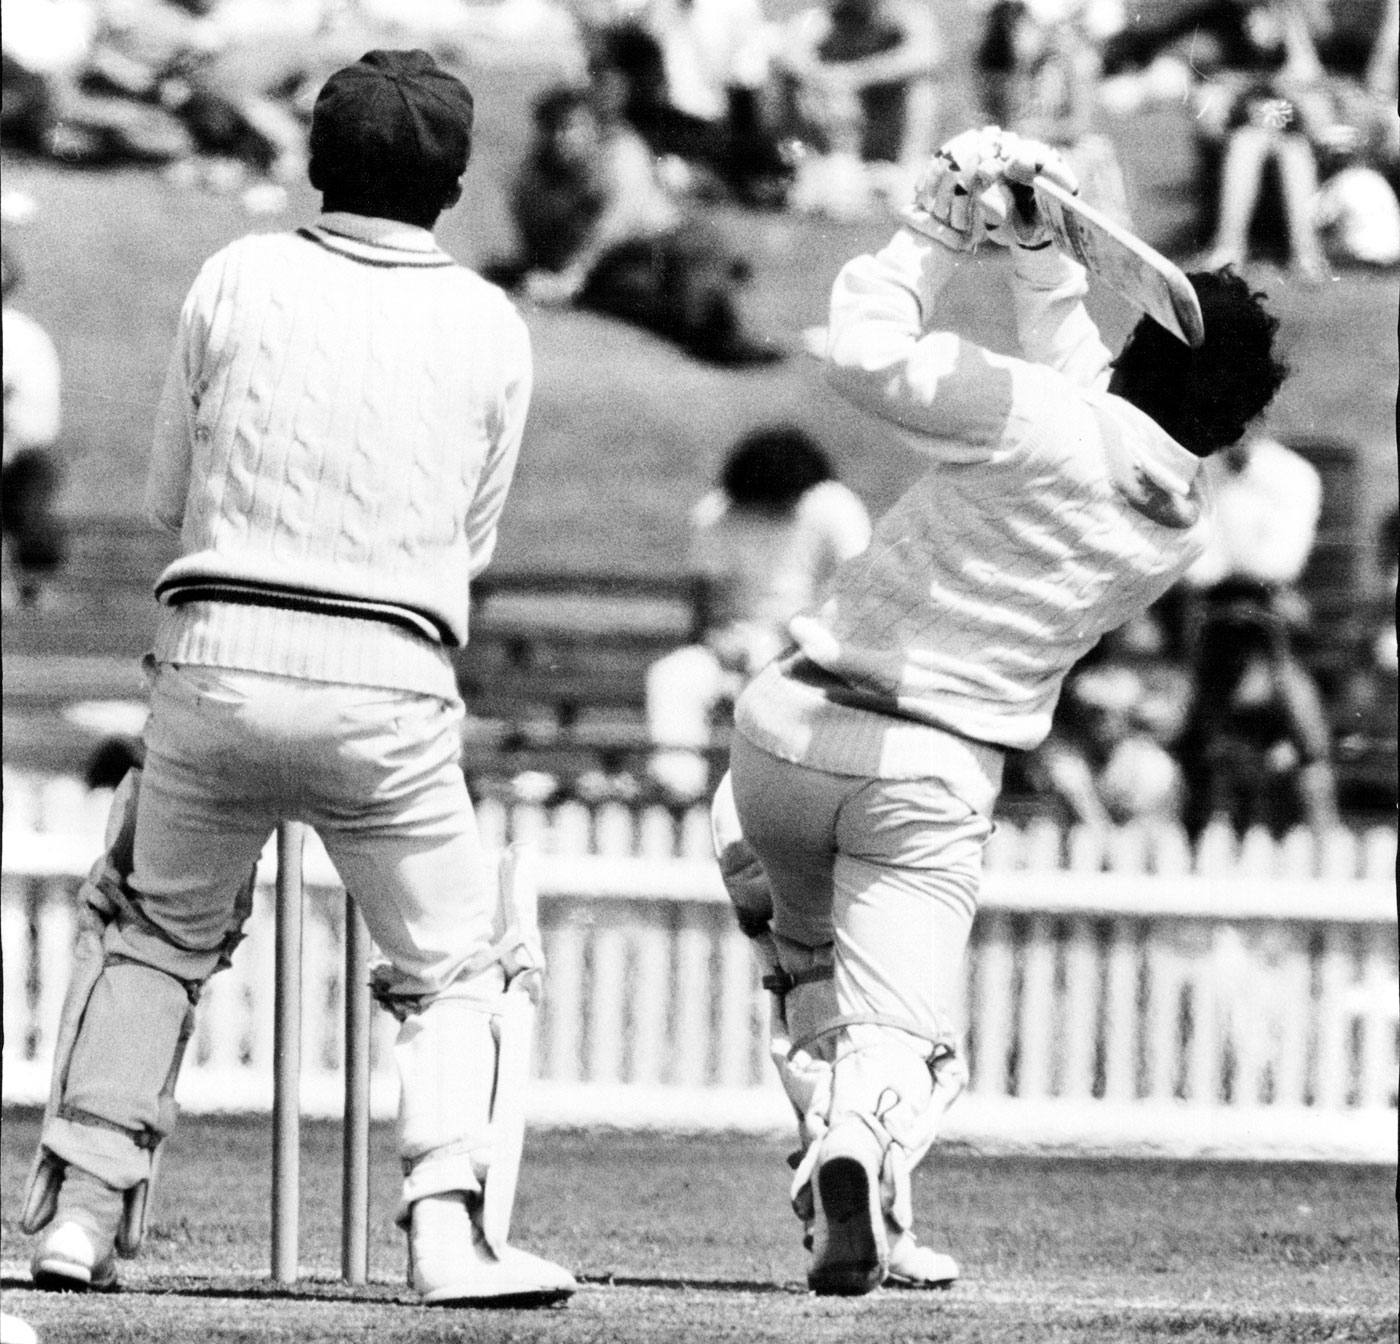 Gavaskar sends the ball flying while playing for the World XI, 1971